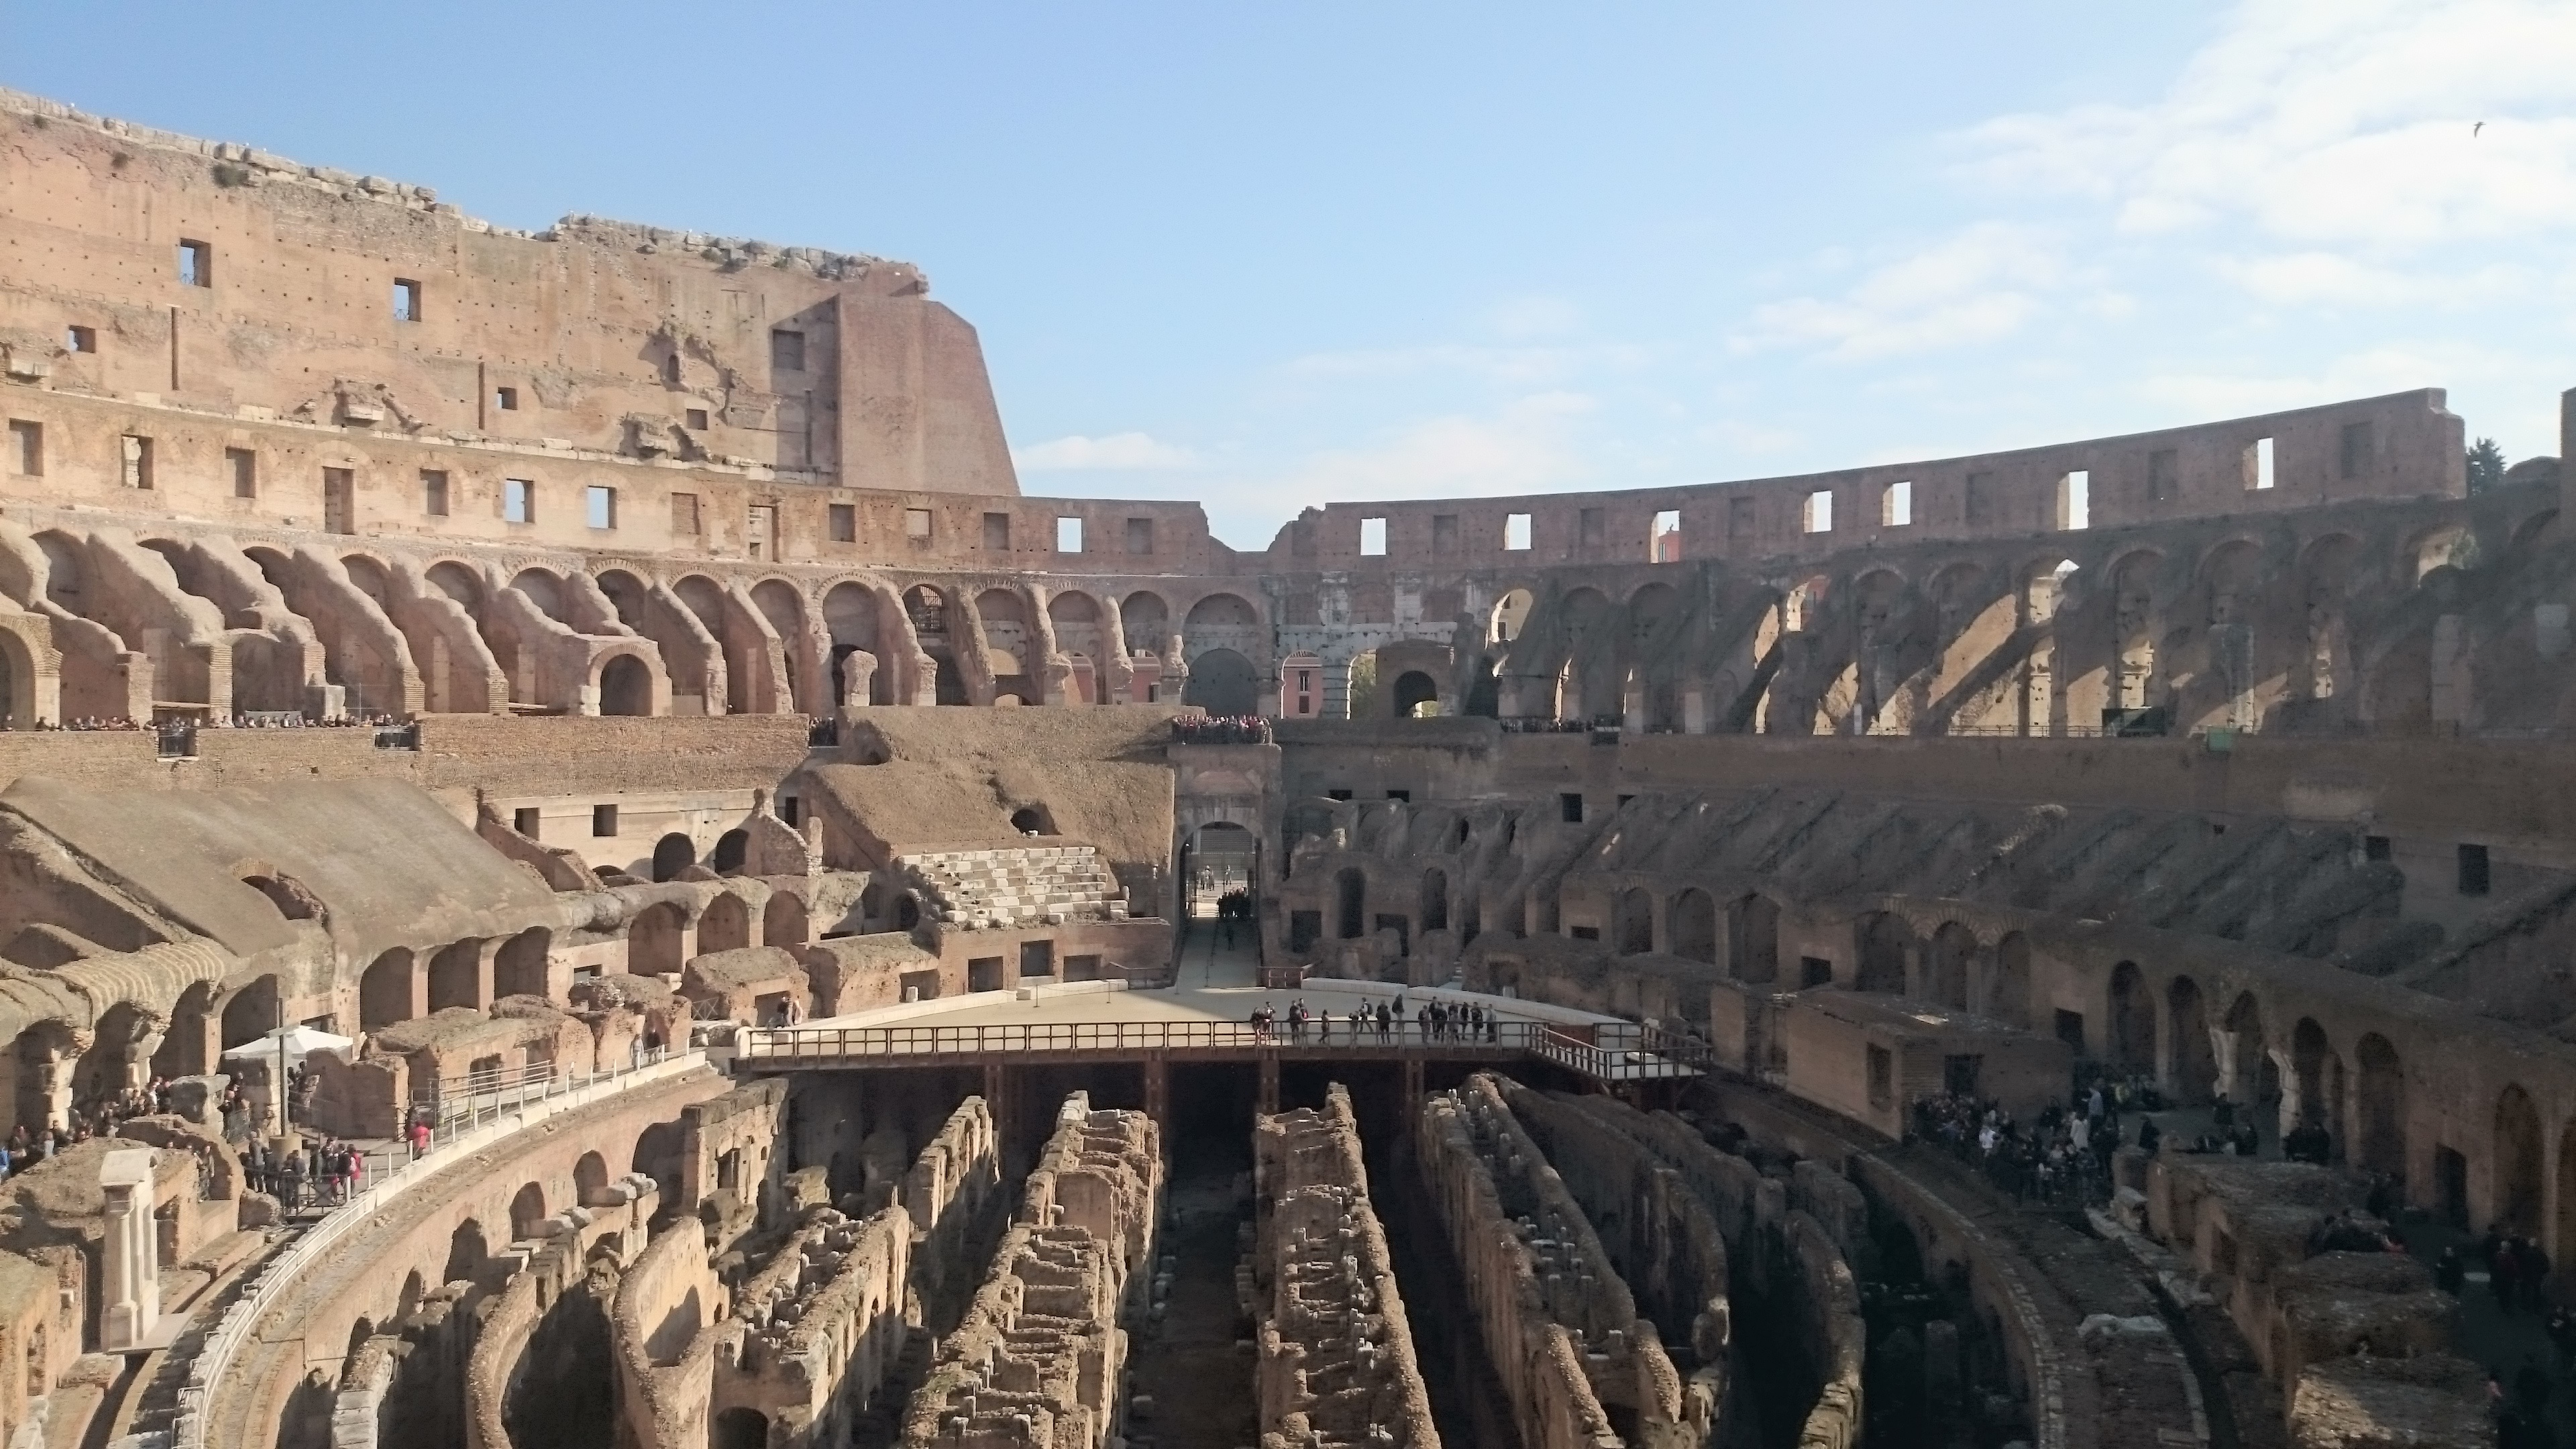 Why is the Roman Colosseum a tourist attraction? - Quora